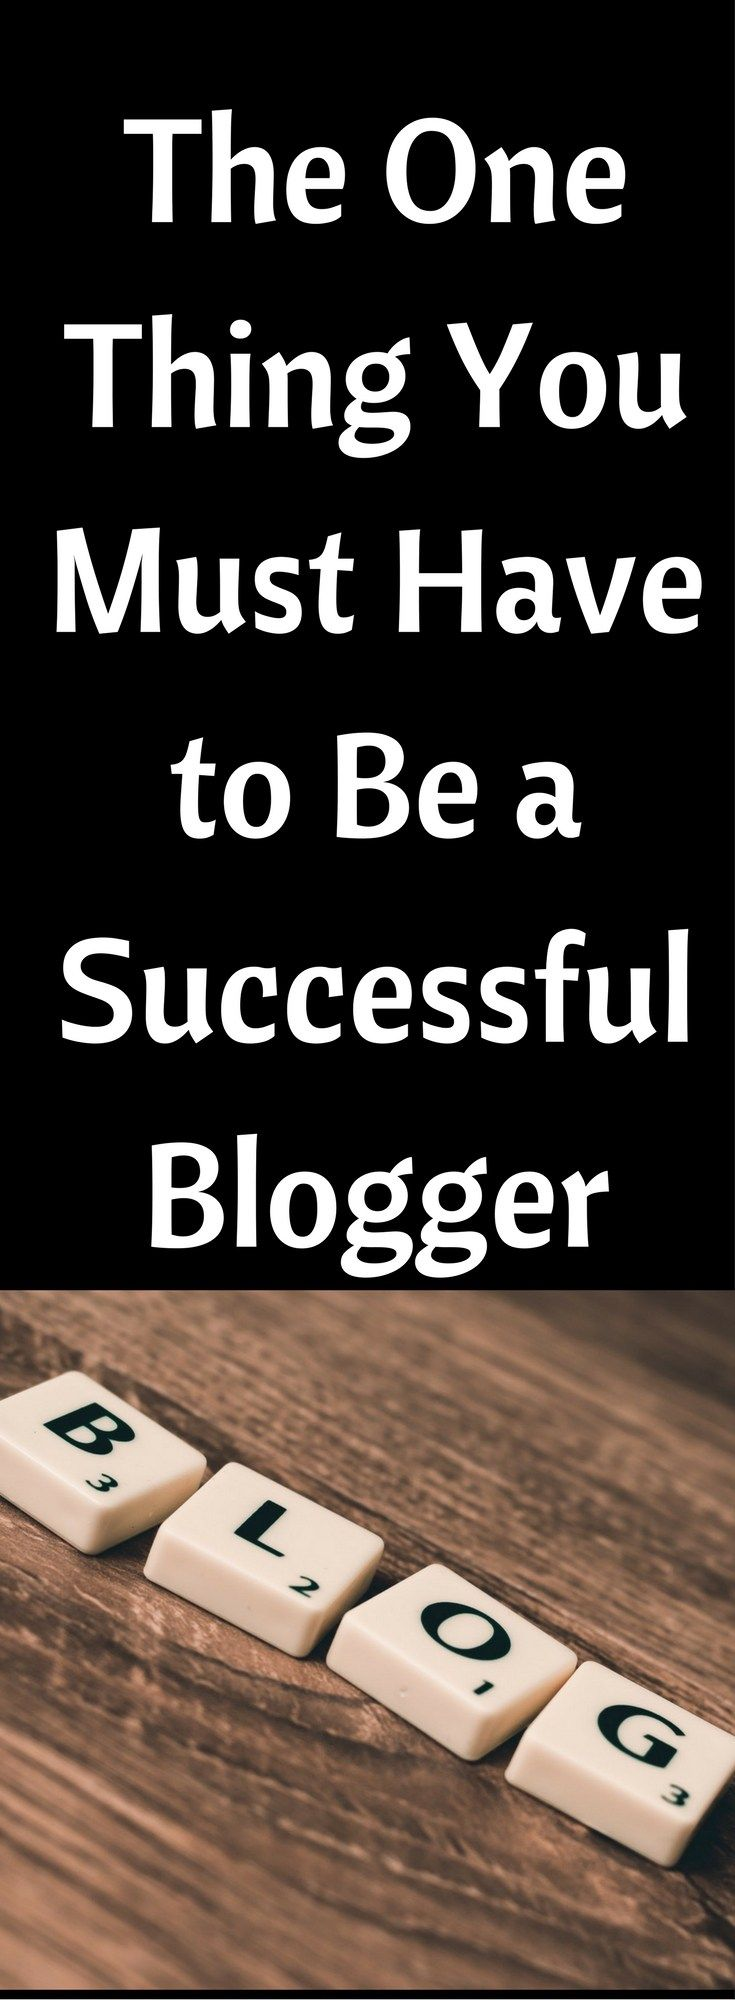 The One Thing You Need to Be Successful As a Blogger | Blog Tips | WAHM | Start a Blog | How to Blog | Blogging for Money | Make Money Blogging